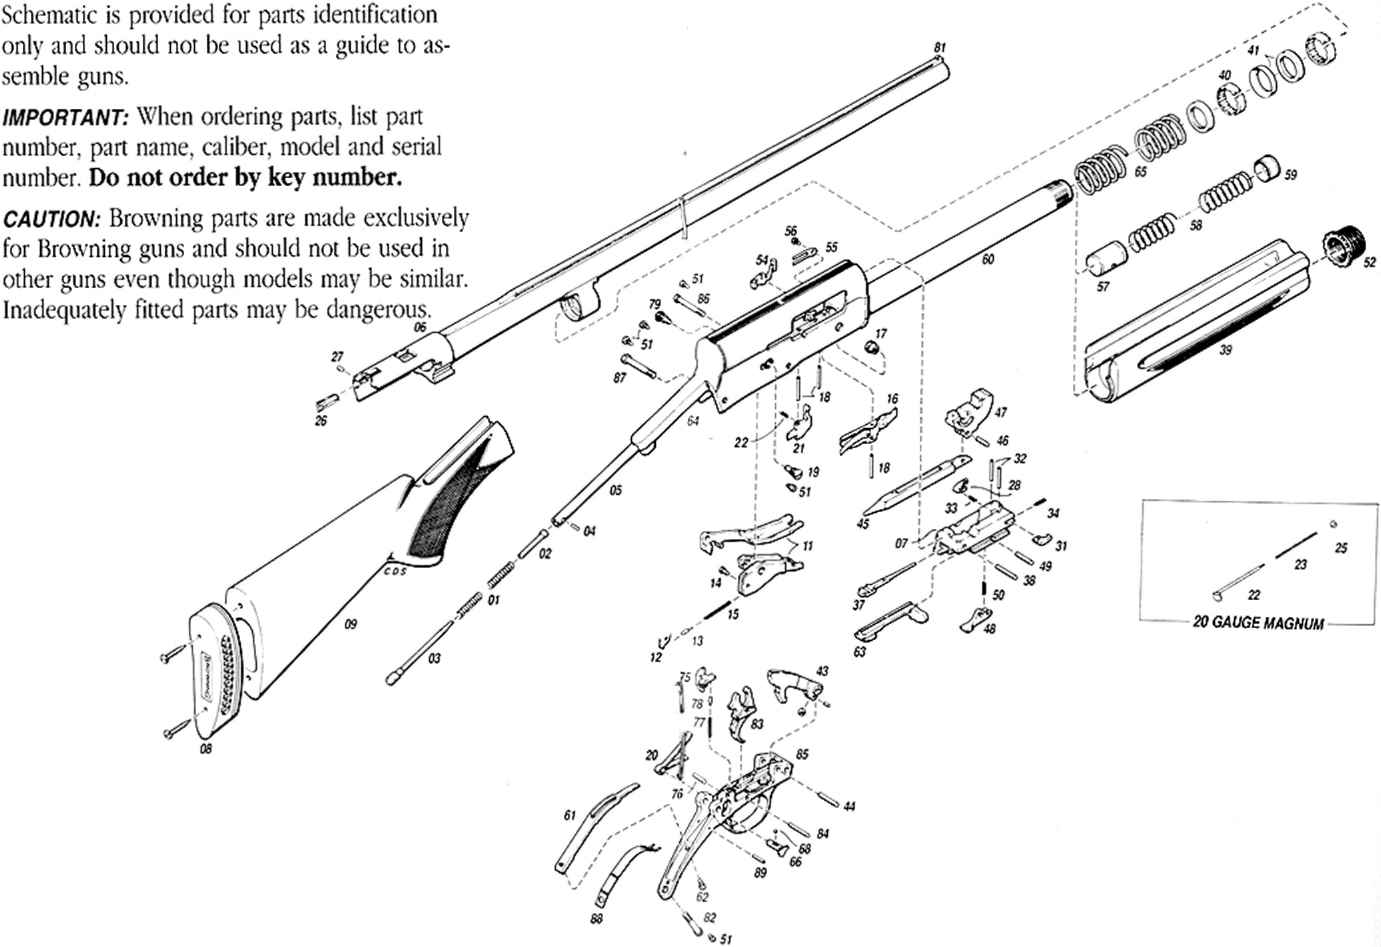 M2 Browning Parts Diagram Trusted Wiring 50 Magnum Surefire Schematic Auto Electrical U2022 M3 Cal